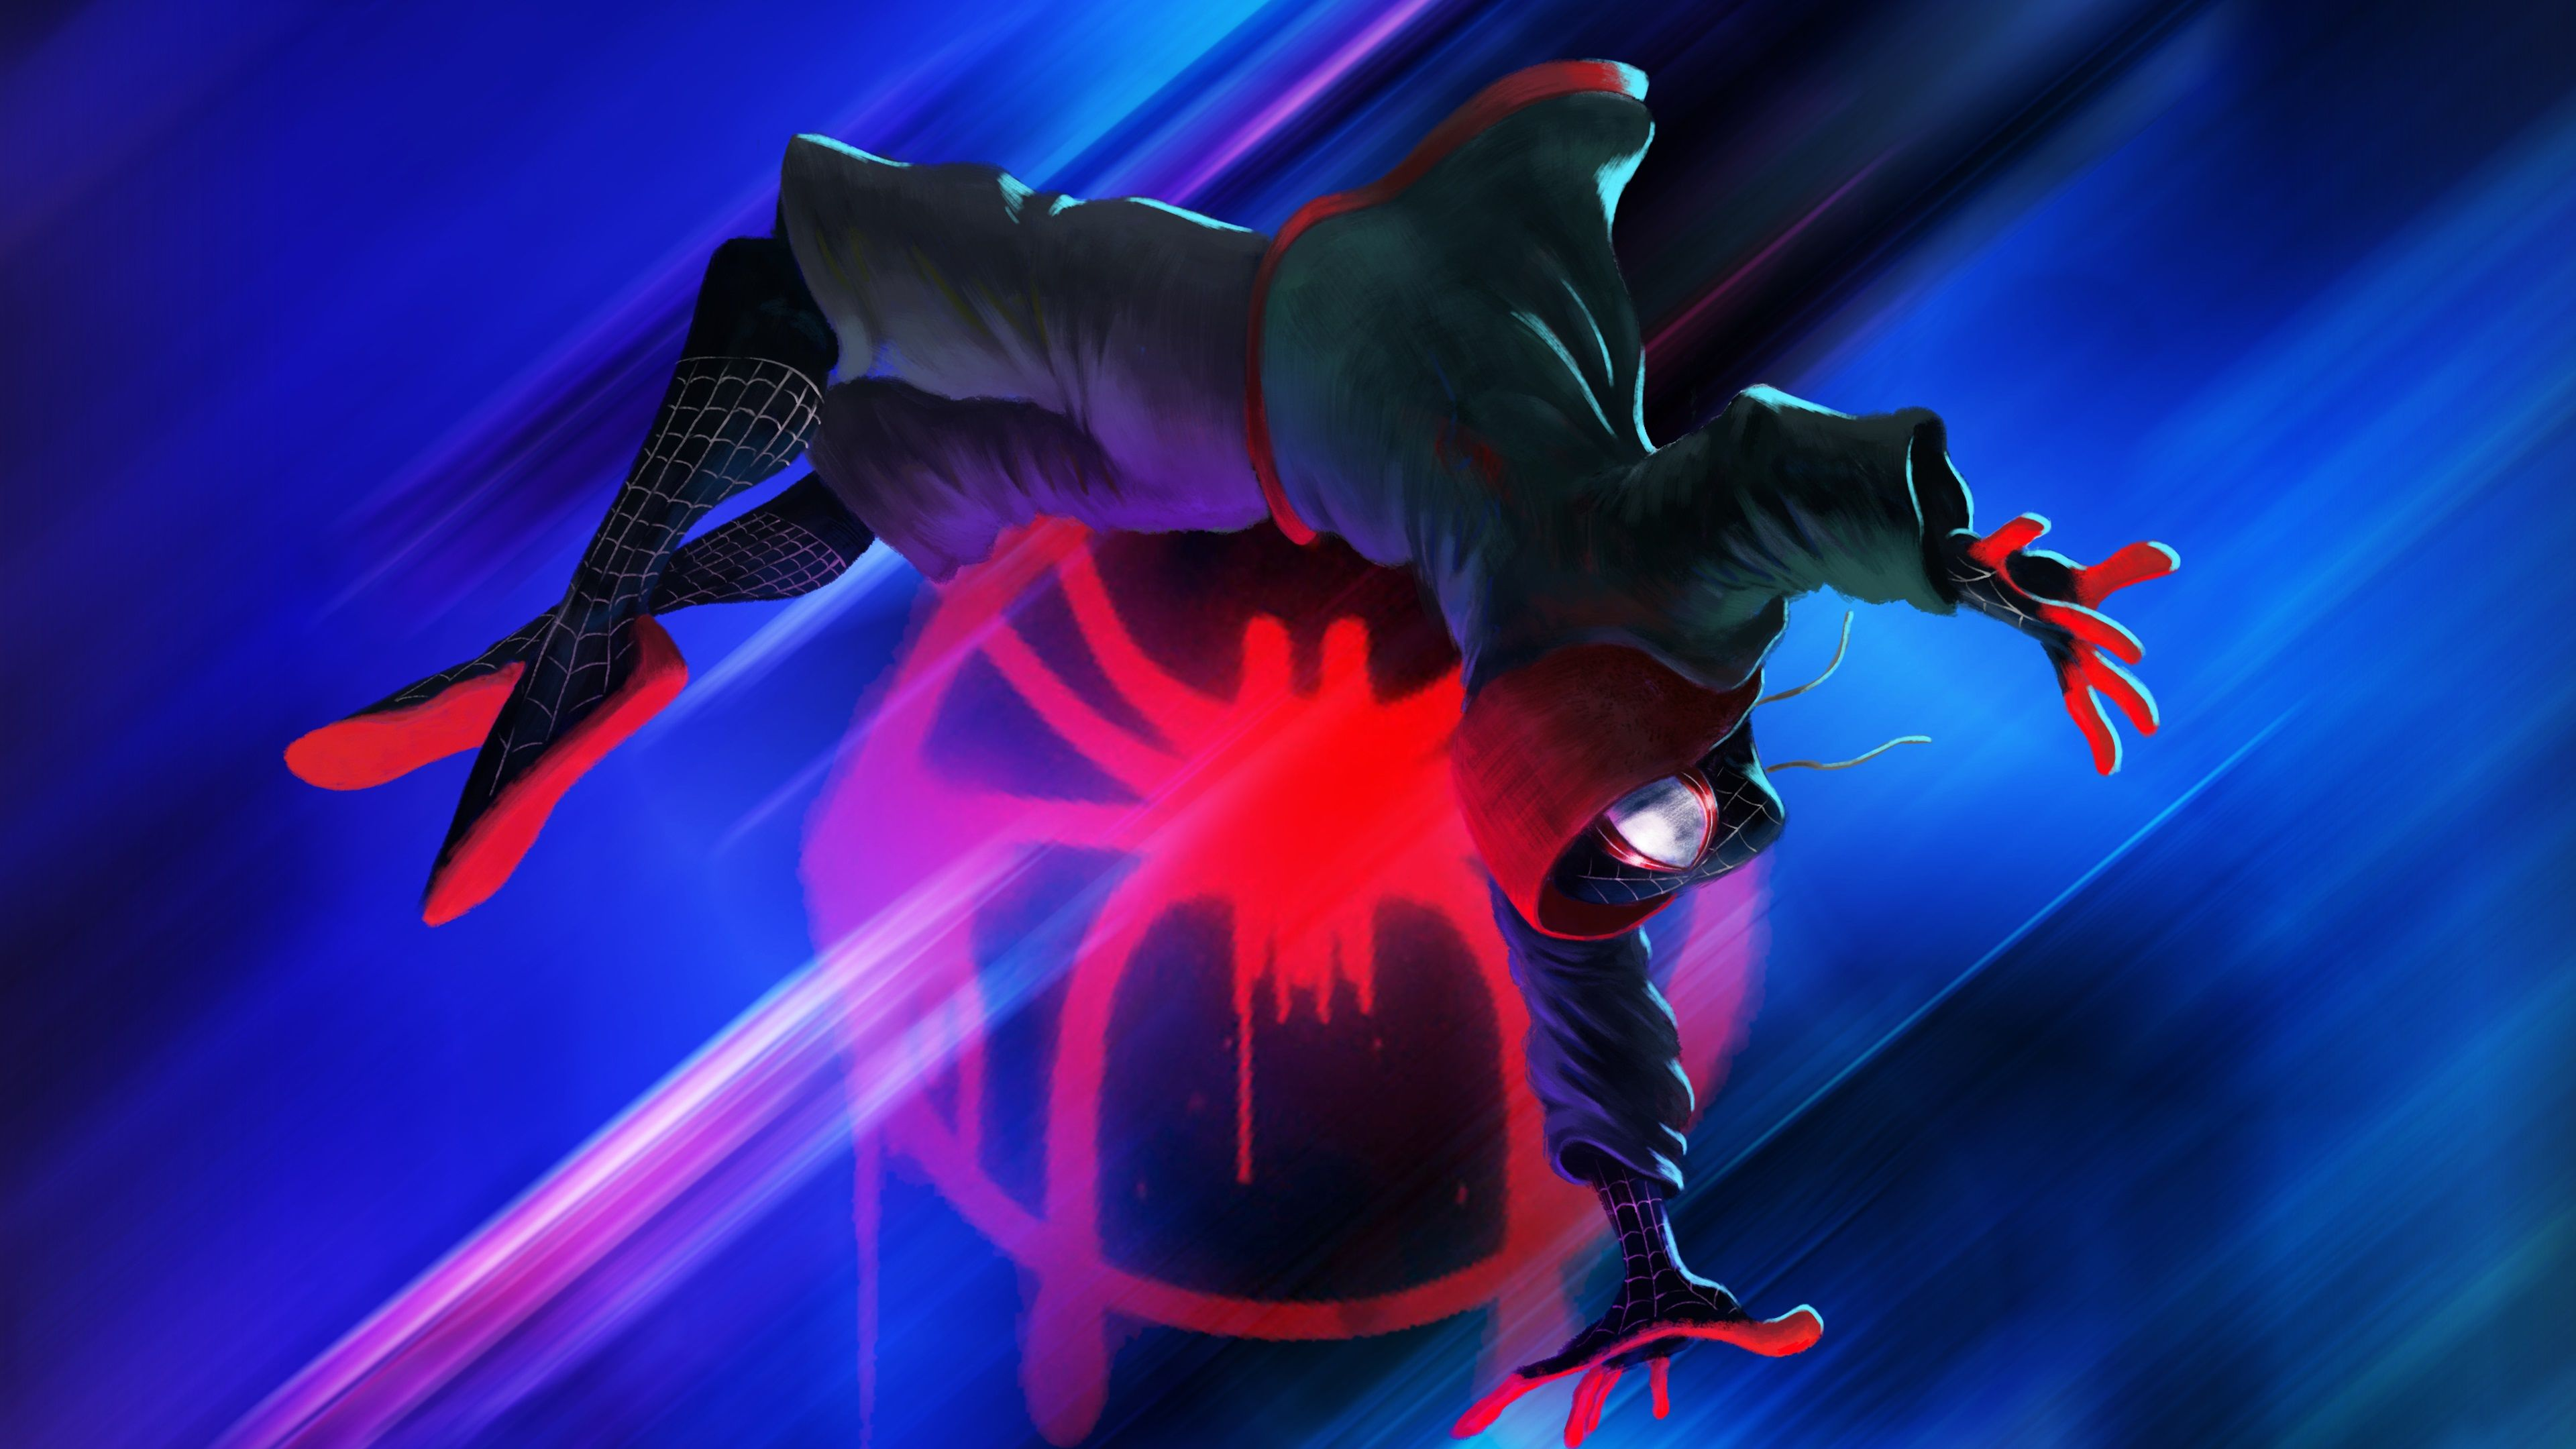 Spider Verse Wallpaper 4k Posted By Michelle Tremblay